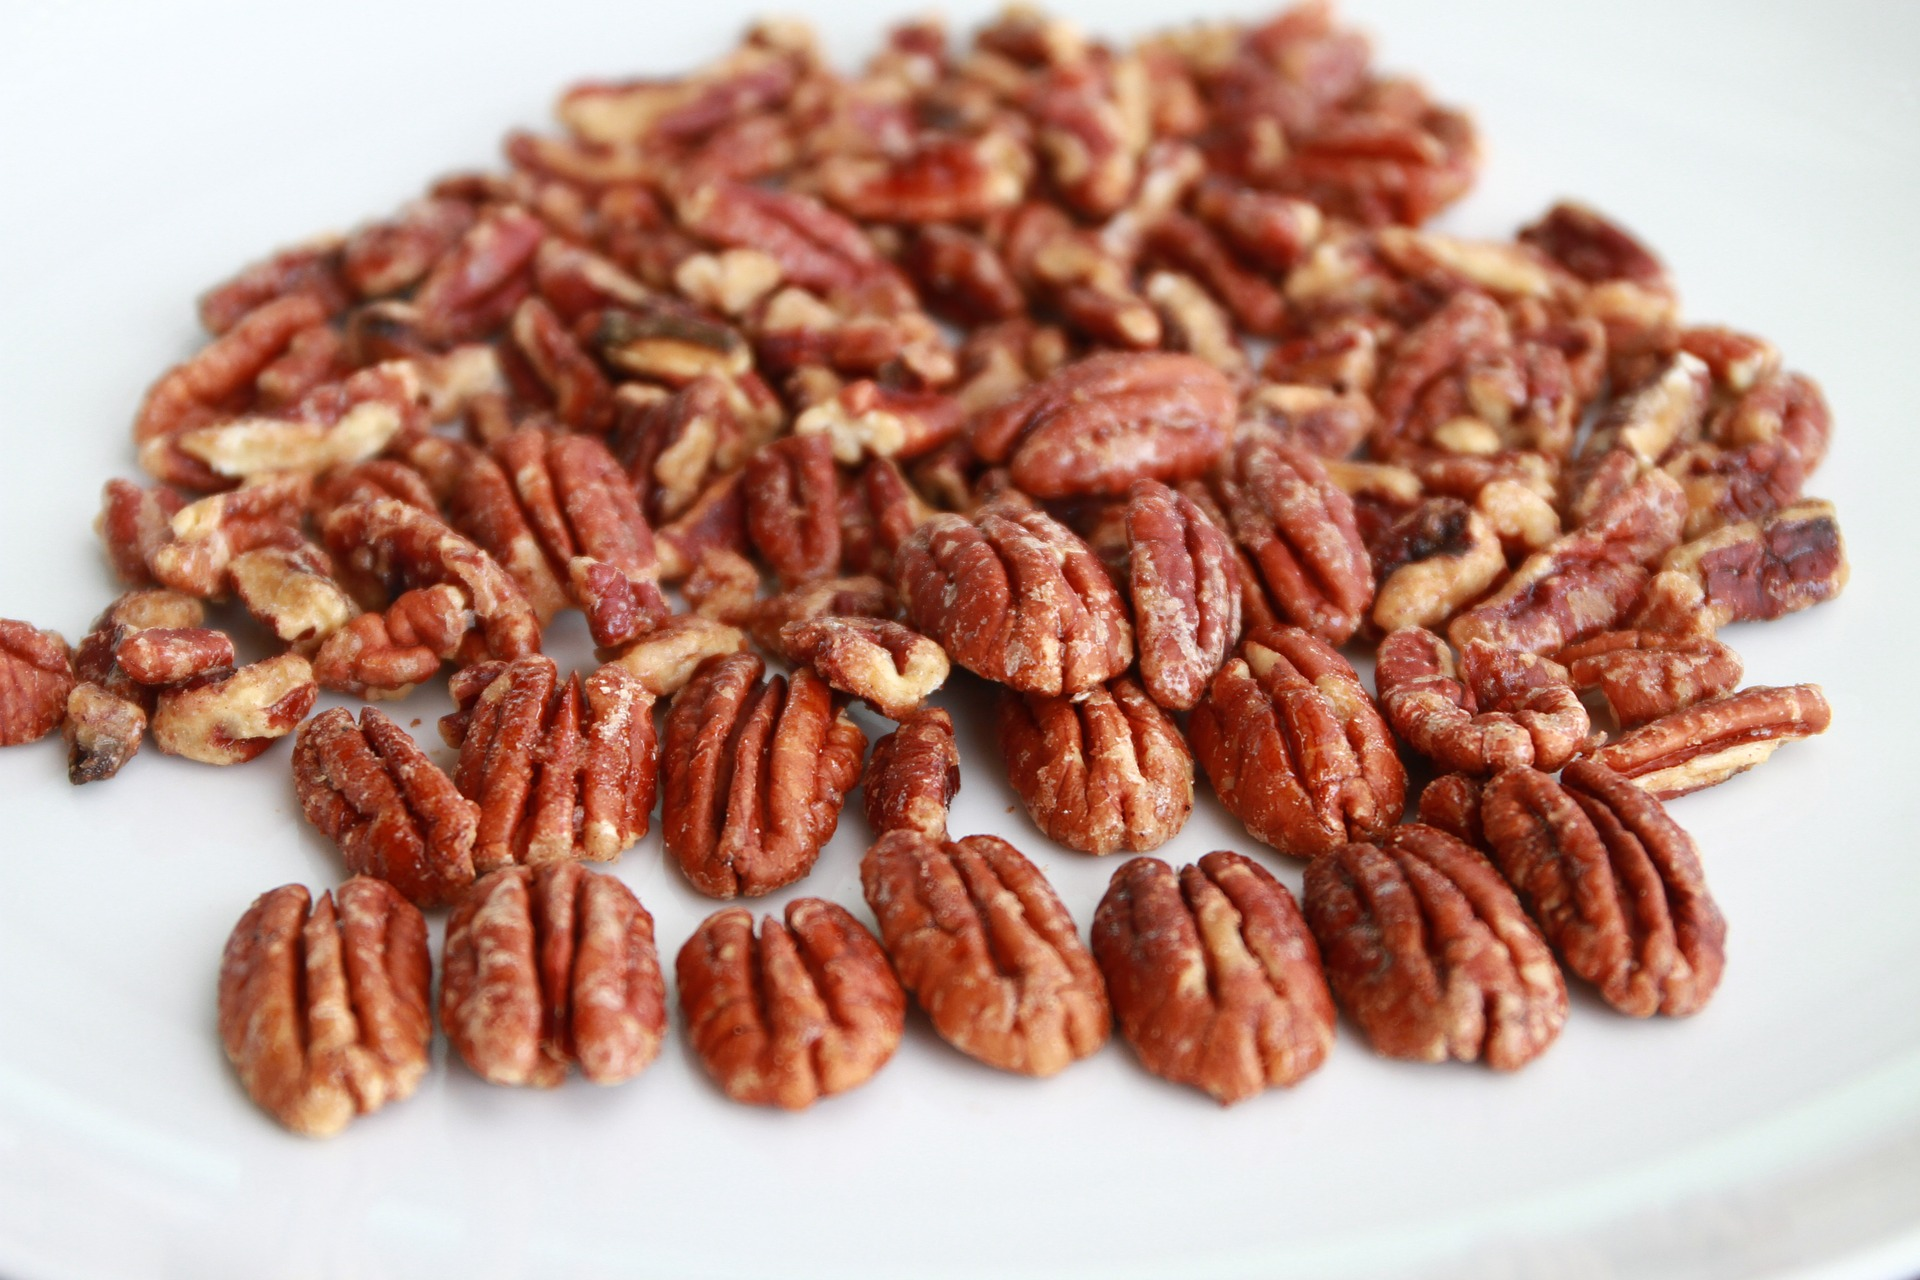 These candied pecans are a great way to begin your holiday gifting. They come together fast and simply too - with no refined sugars!